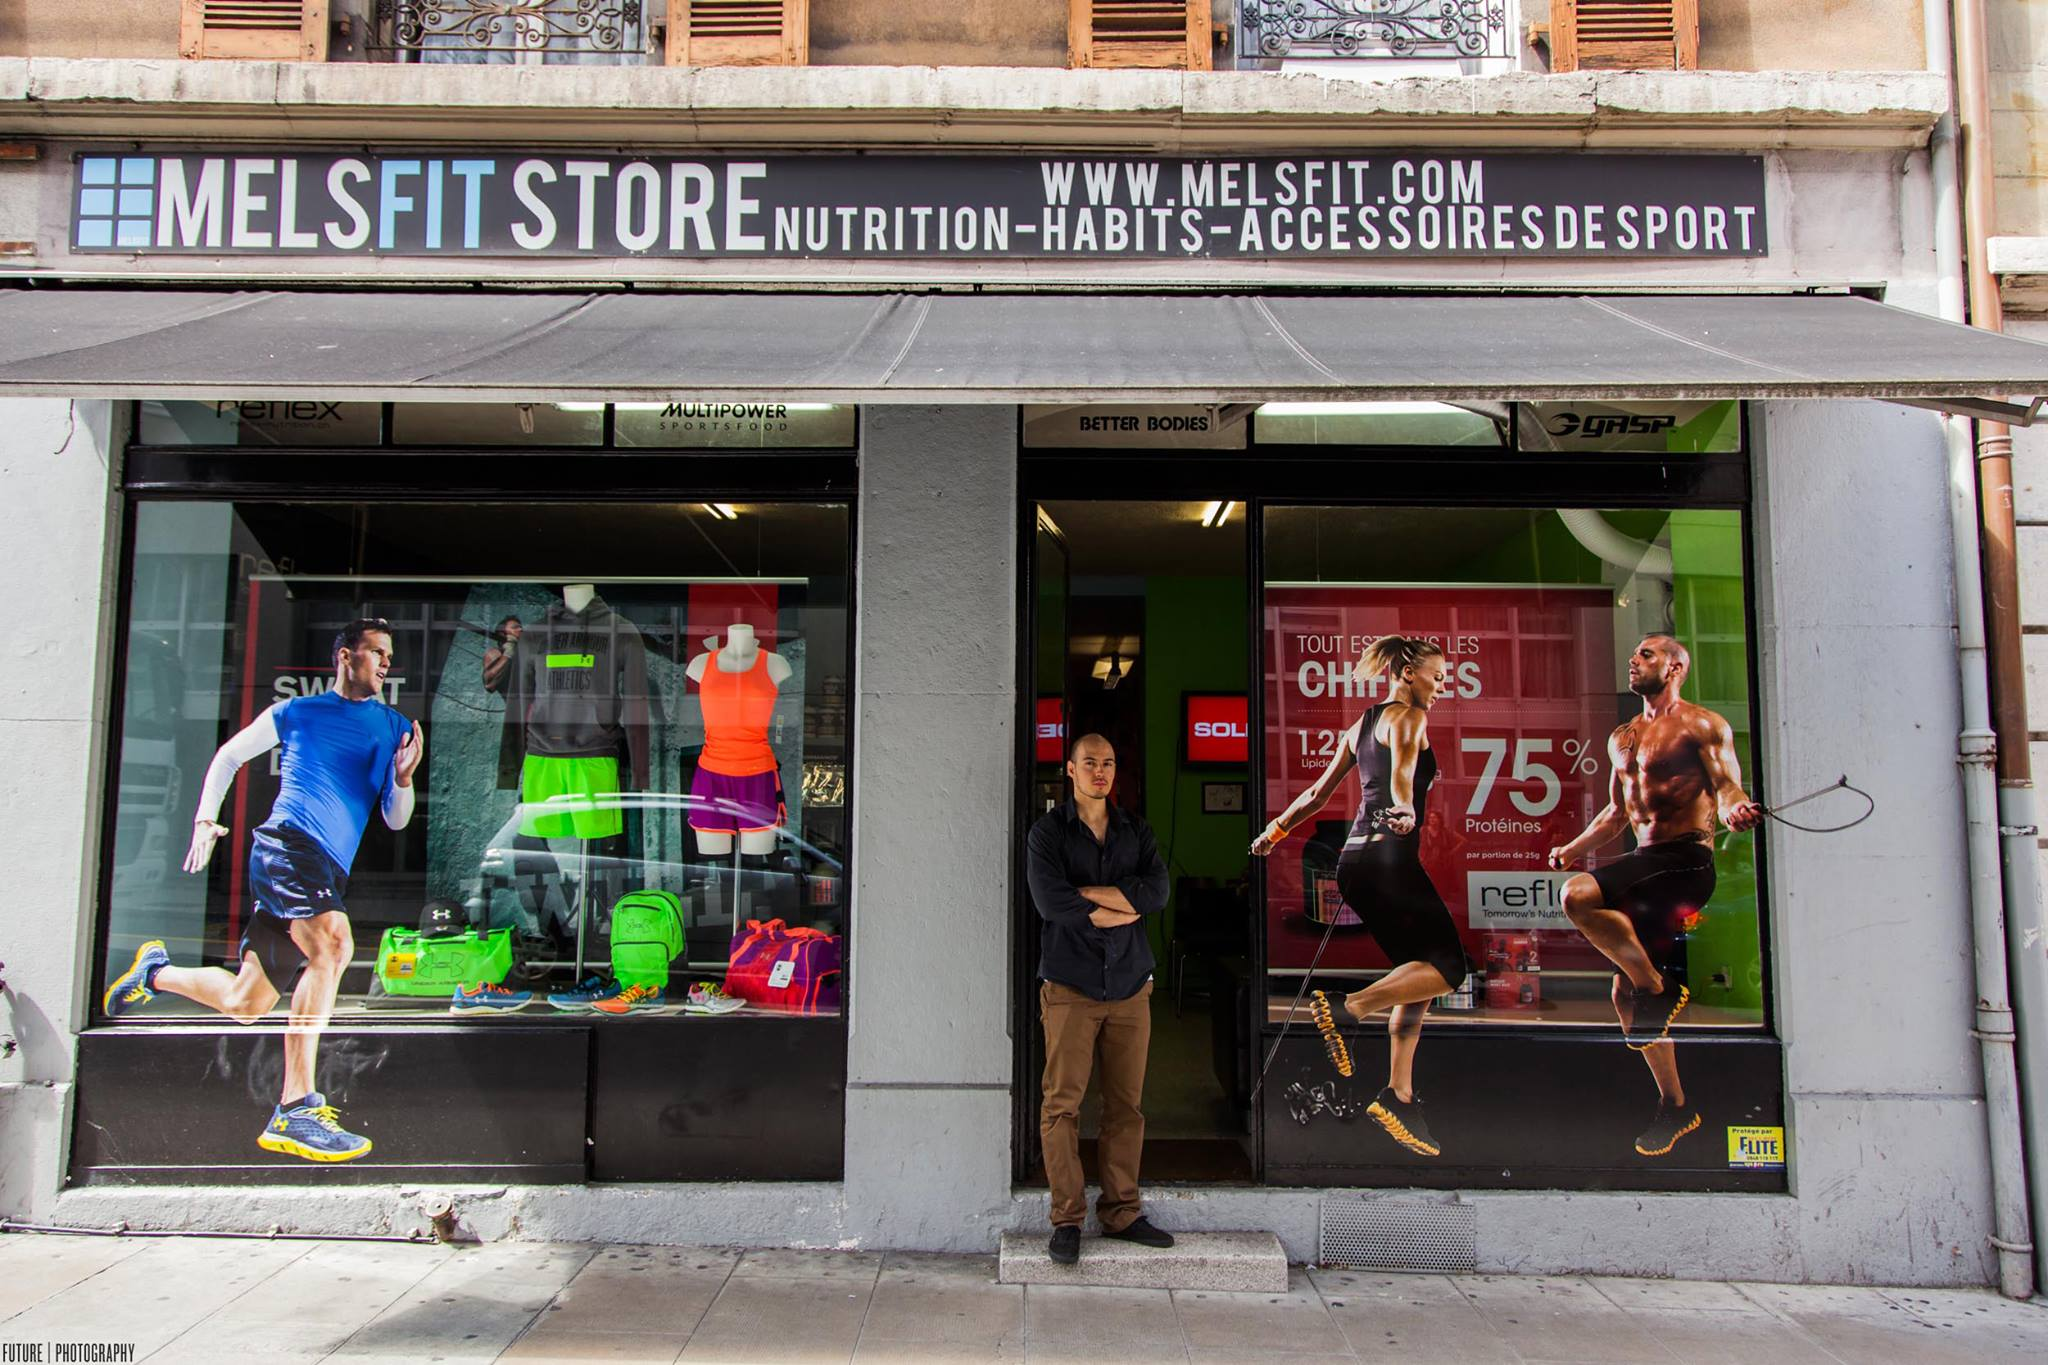 Melsfit store